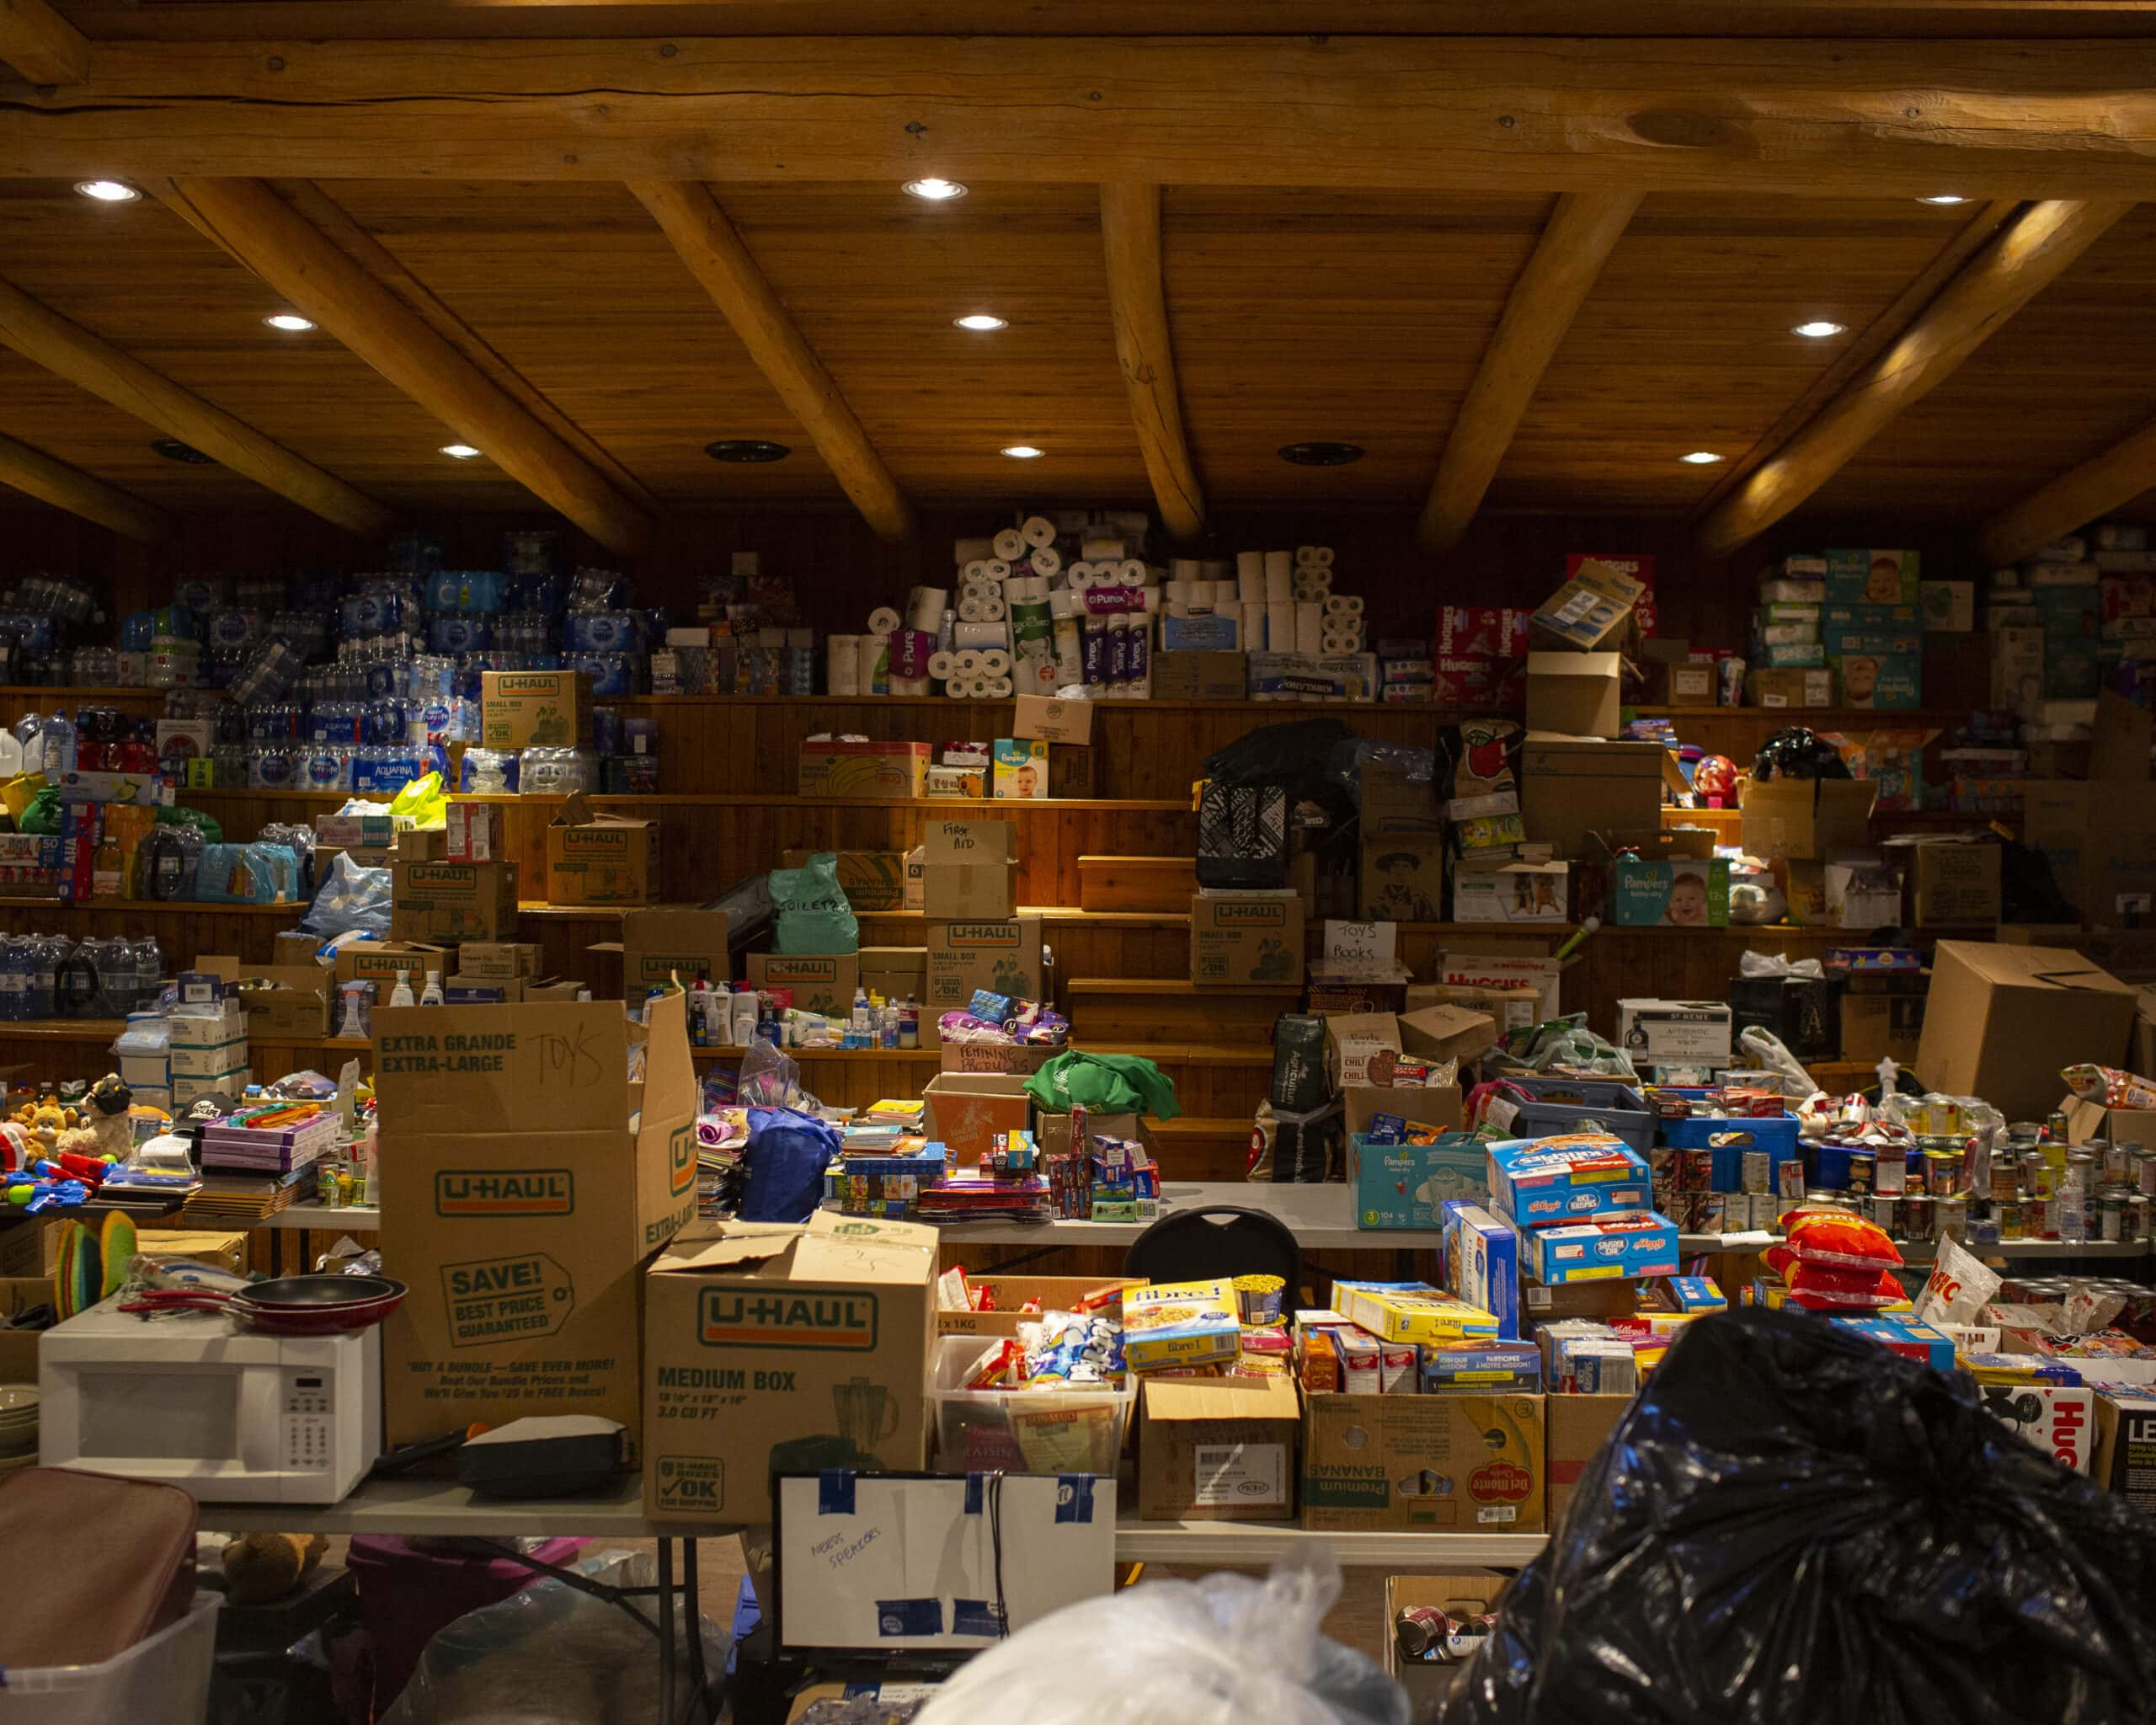 Boston Bar Long House packed with donations